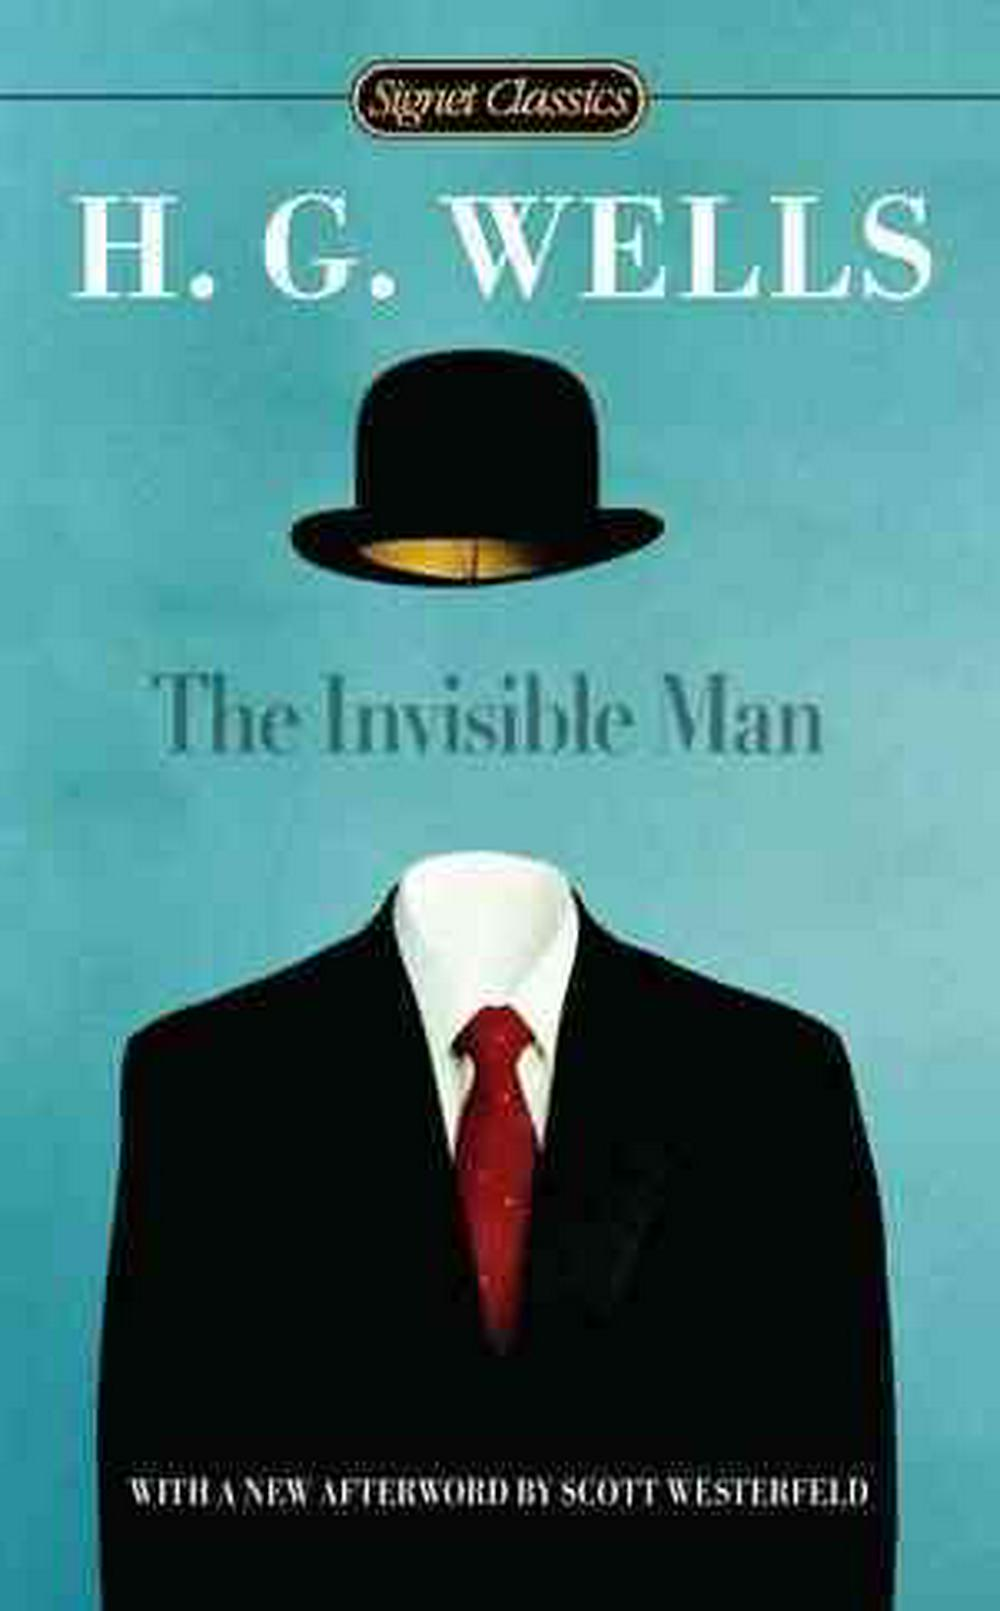 The Invisible Man by H.G. Wells, ISBN: 9780451531674